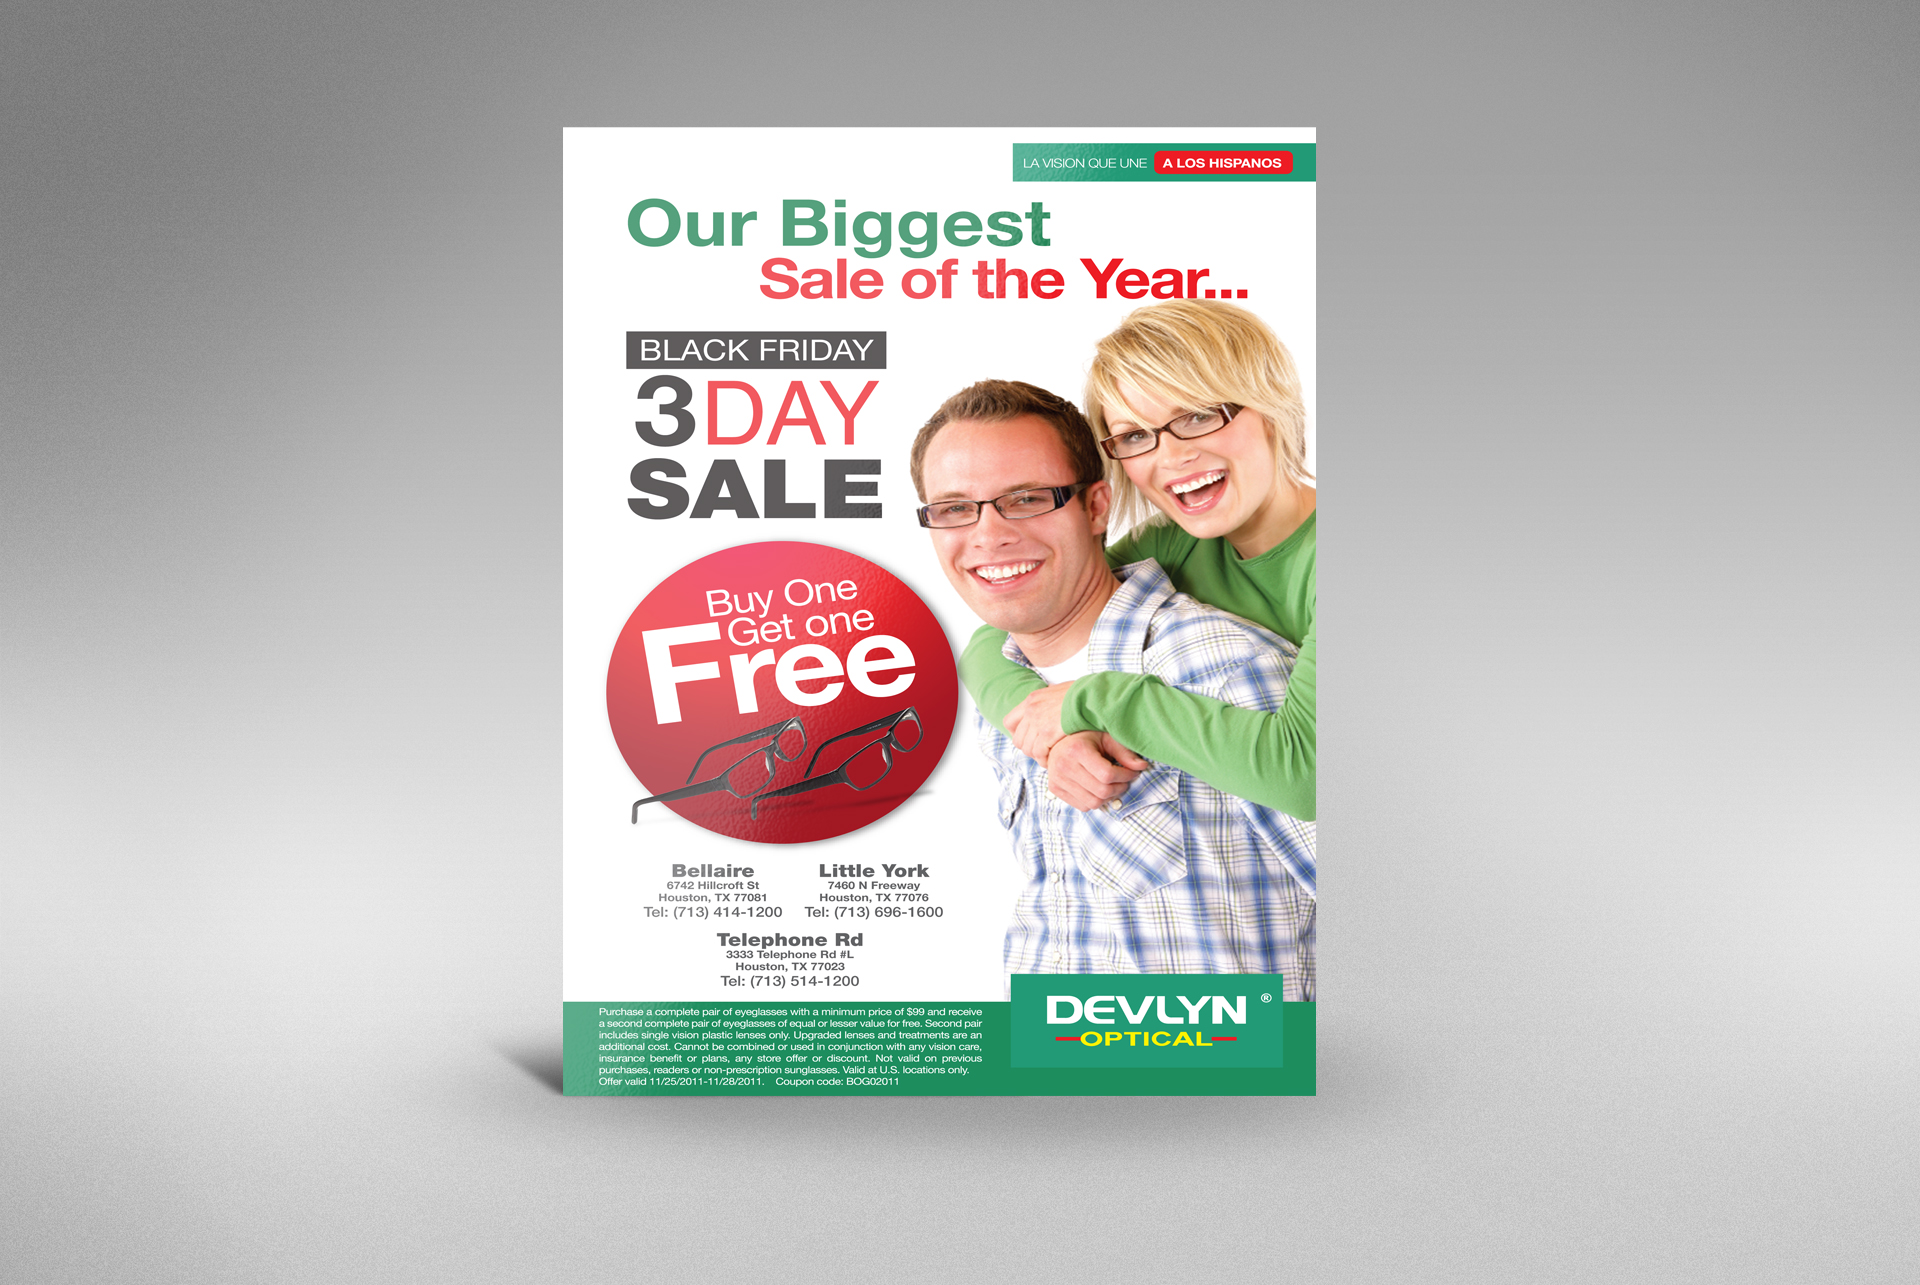 Devlyn Optical Sale